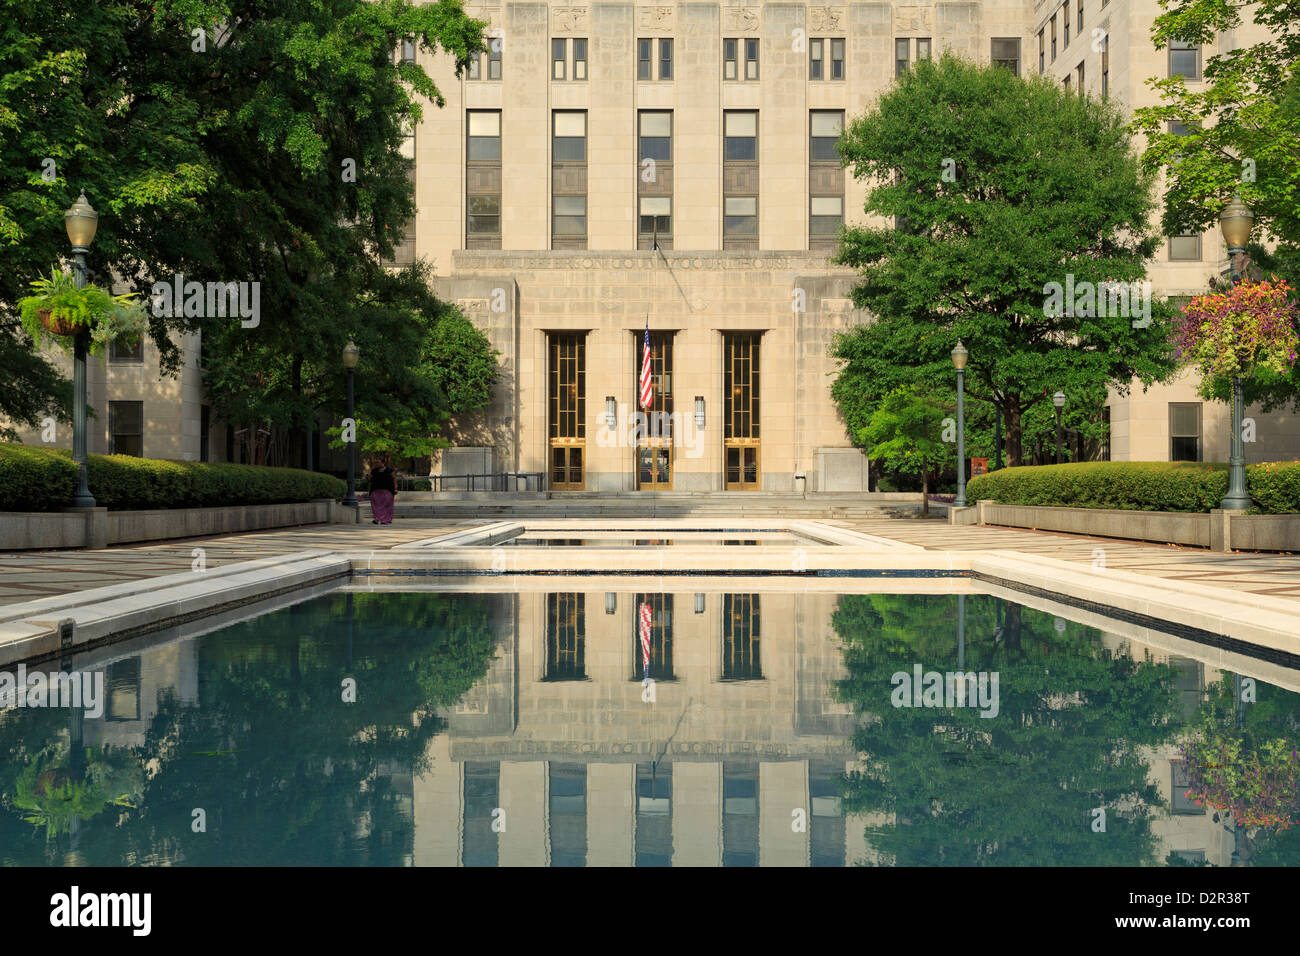 Jefferson County Courthouse in Linn Park, Birmingham, Alabama, United States of America, North America - Stock Image